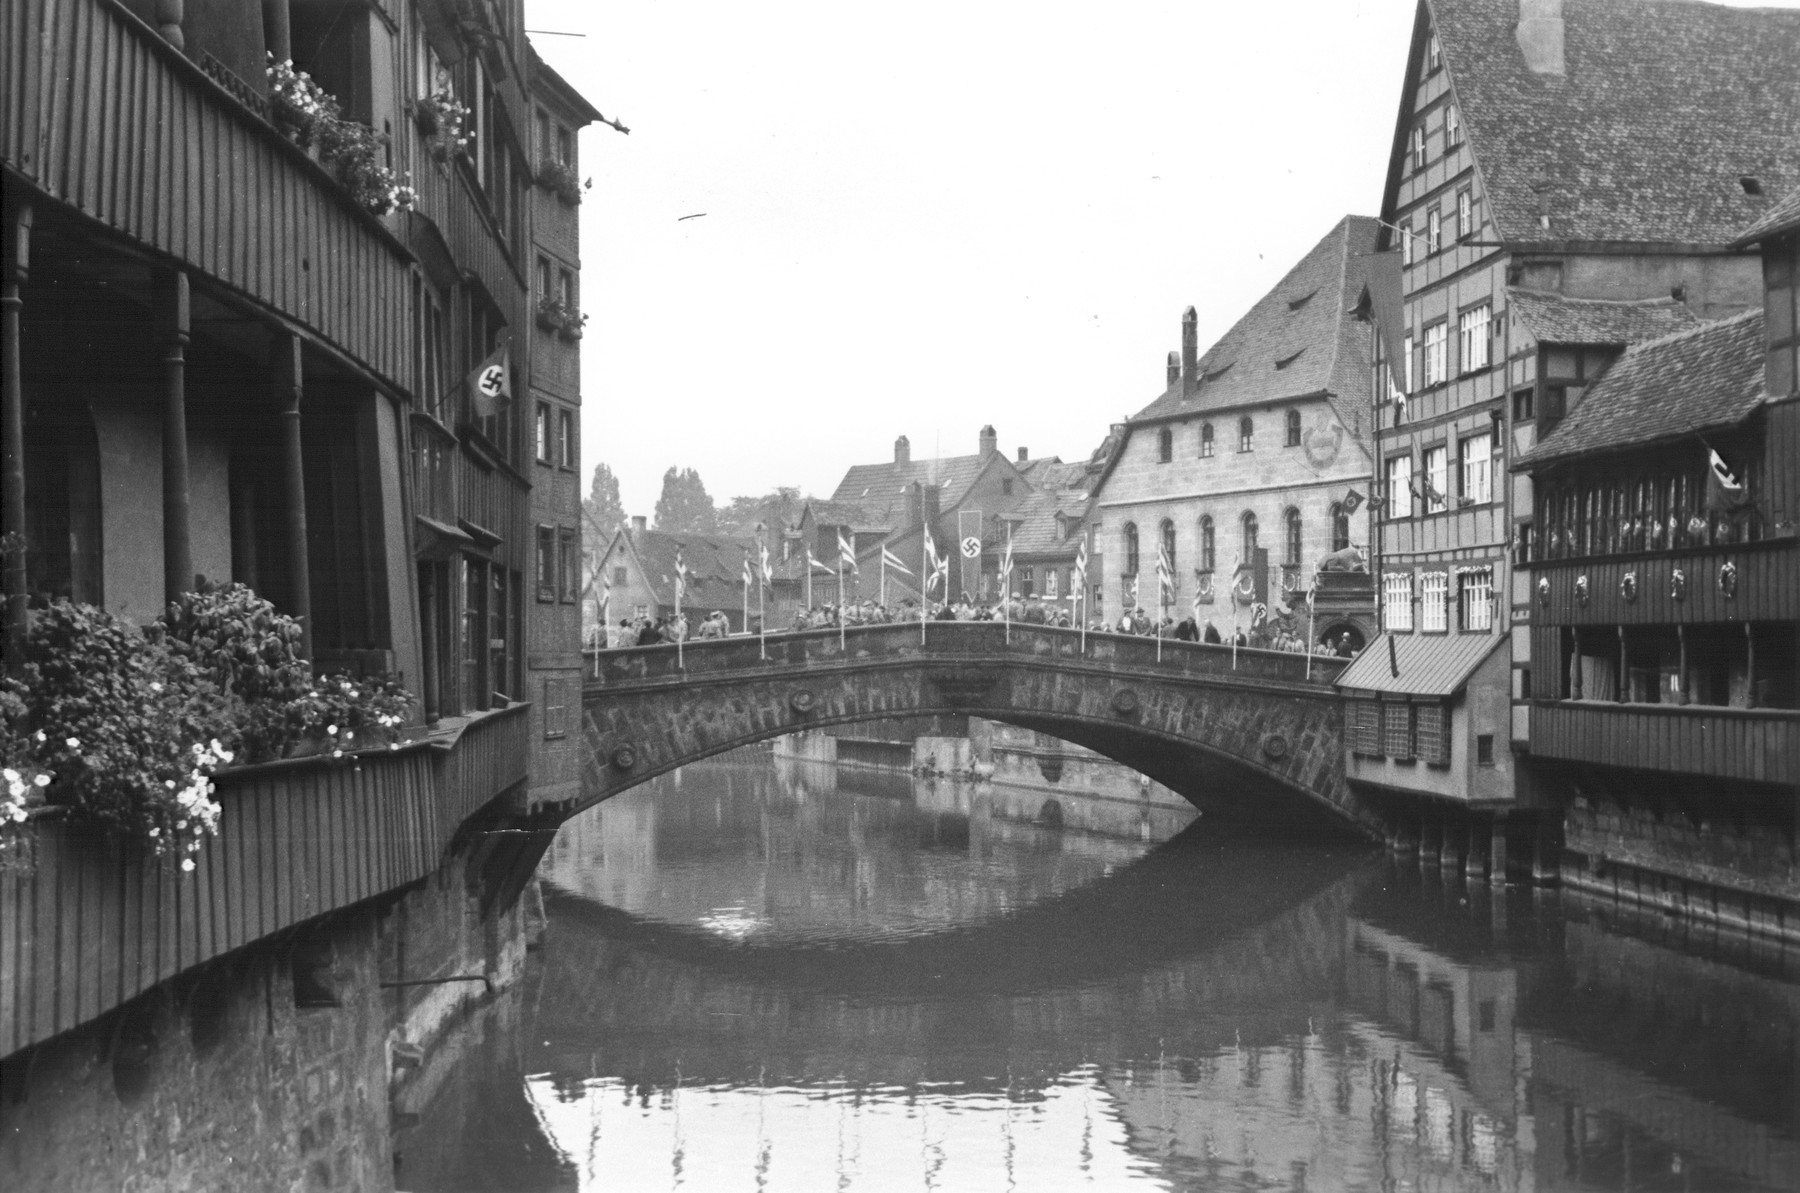 View of a bridge spanning a canal in Nuremberg.  The houses and bridge are bedecked with Nazi flags and banners.